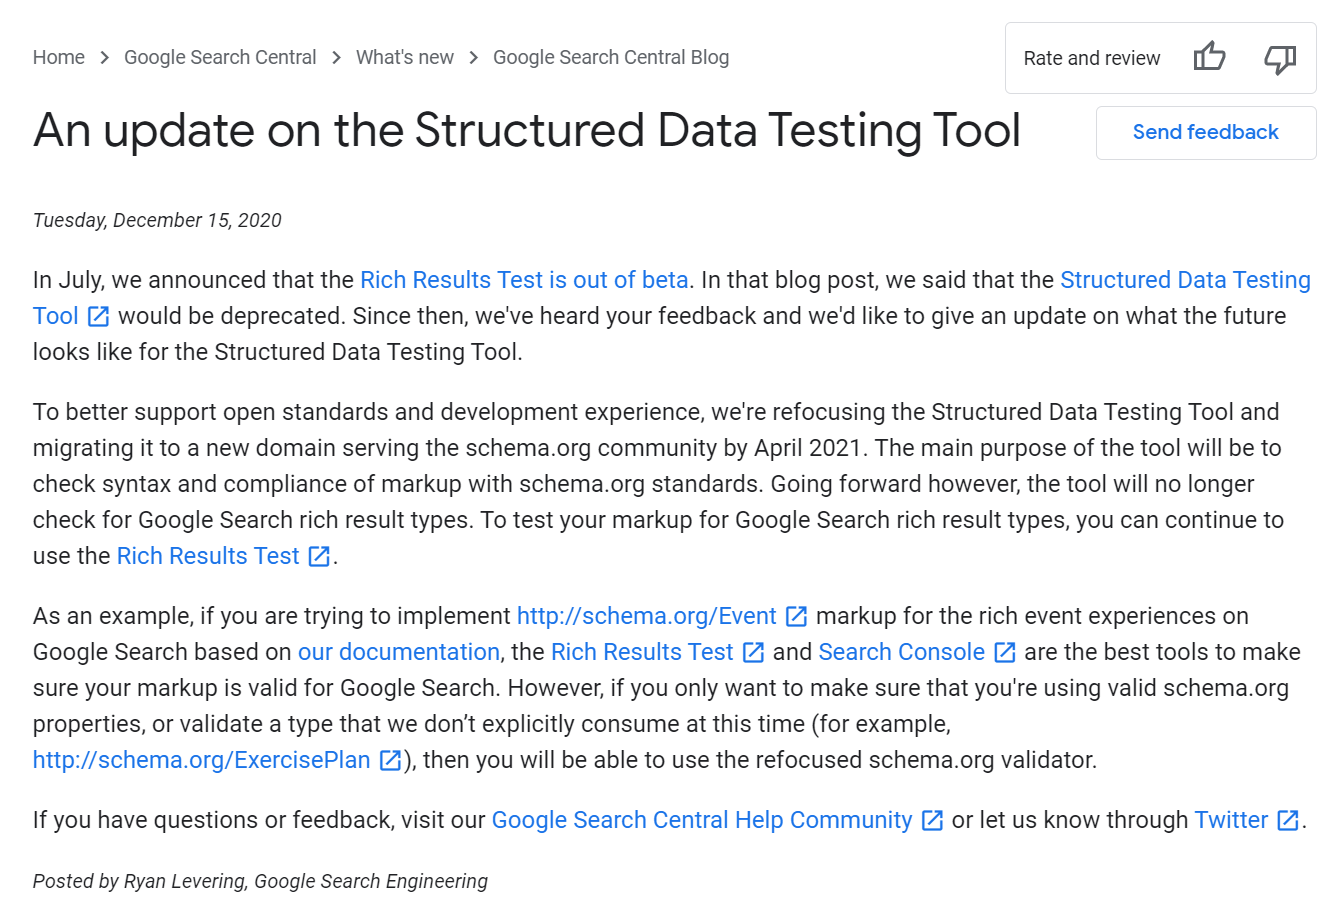 Google announcing updates of their Rich Results Test following feedback from the SEO community onthe deprecation of the SDTT